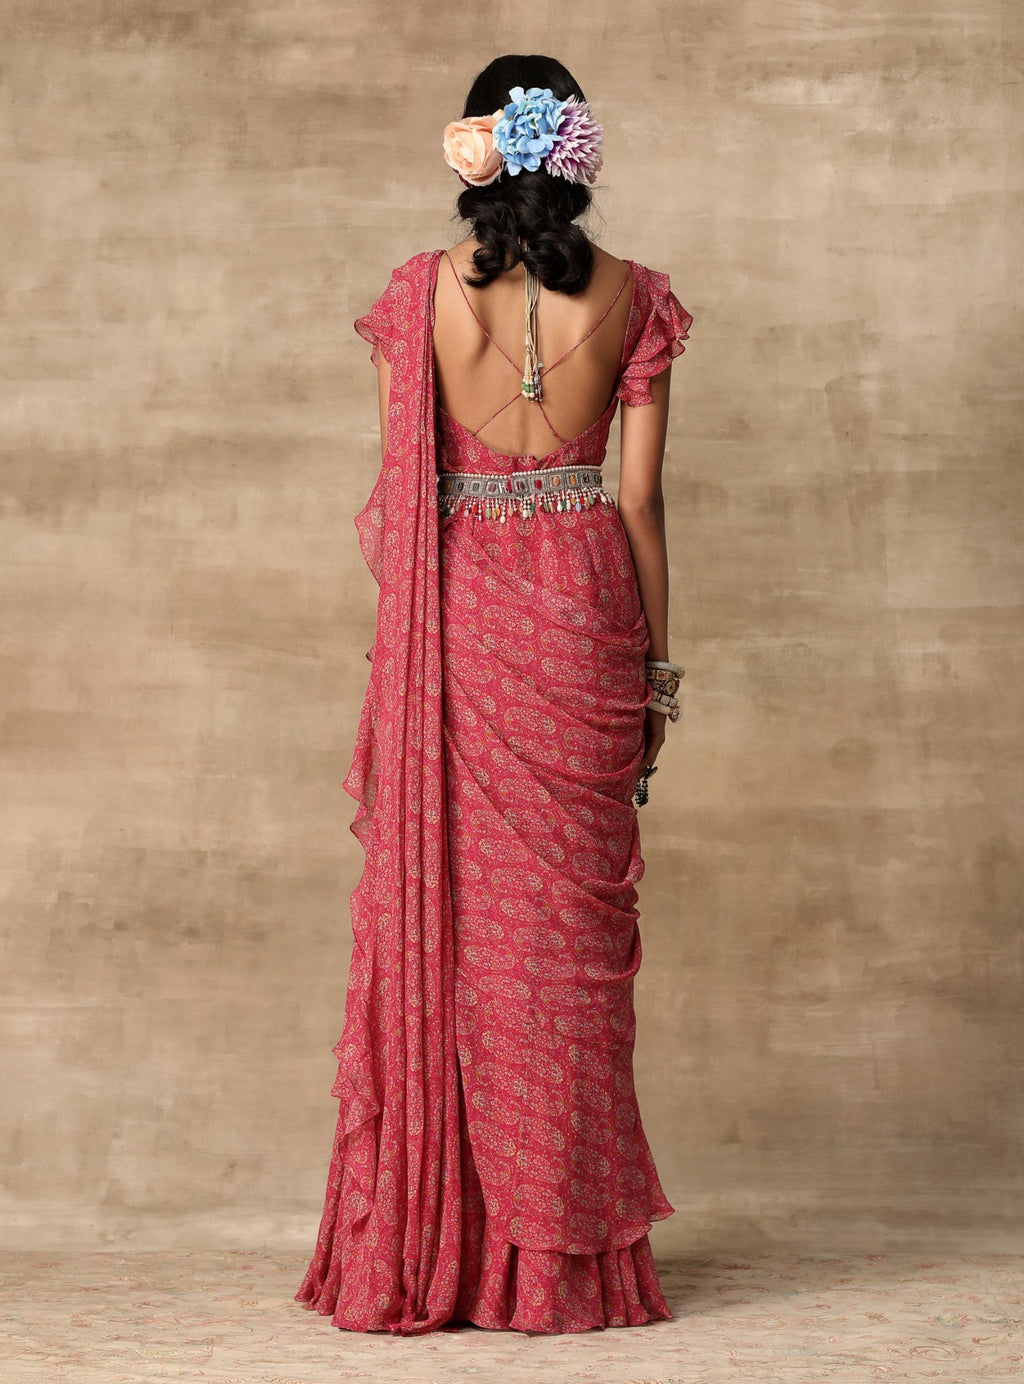 Berry Pink Saree Gown With Ruffle Drape & Belt